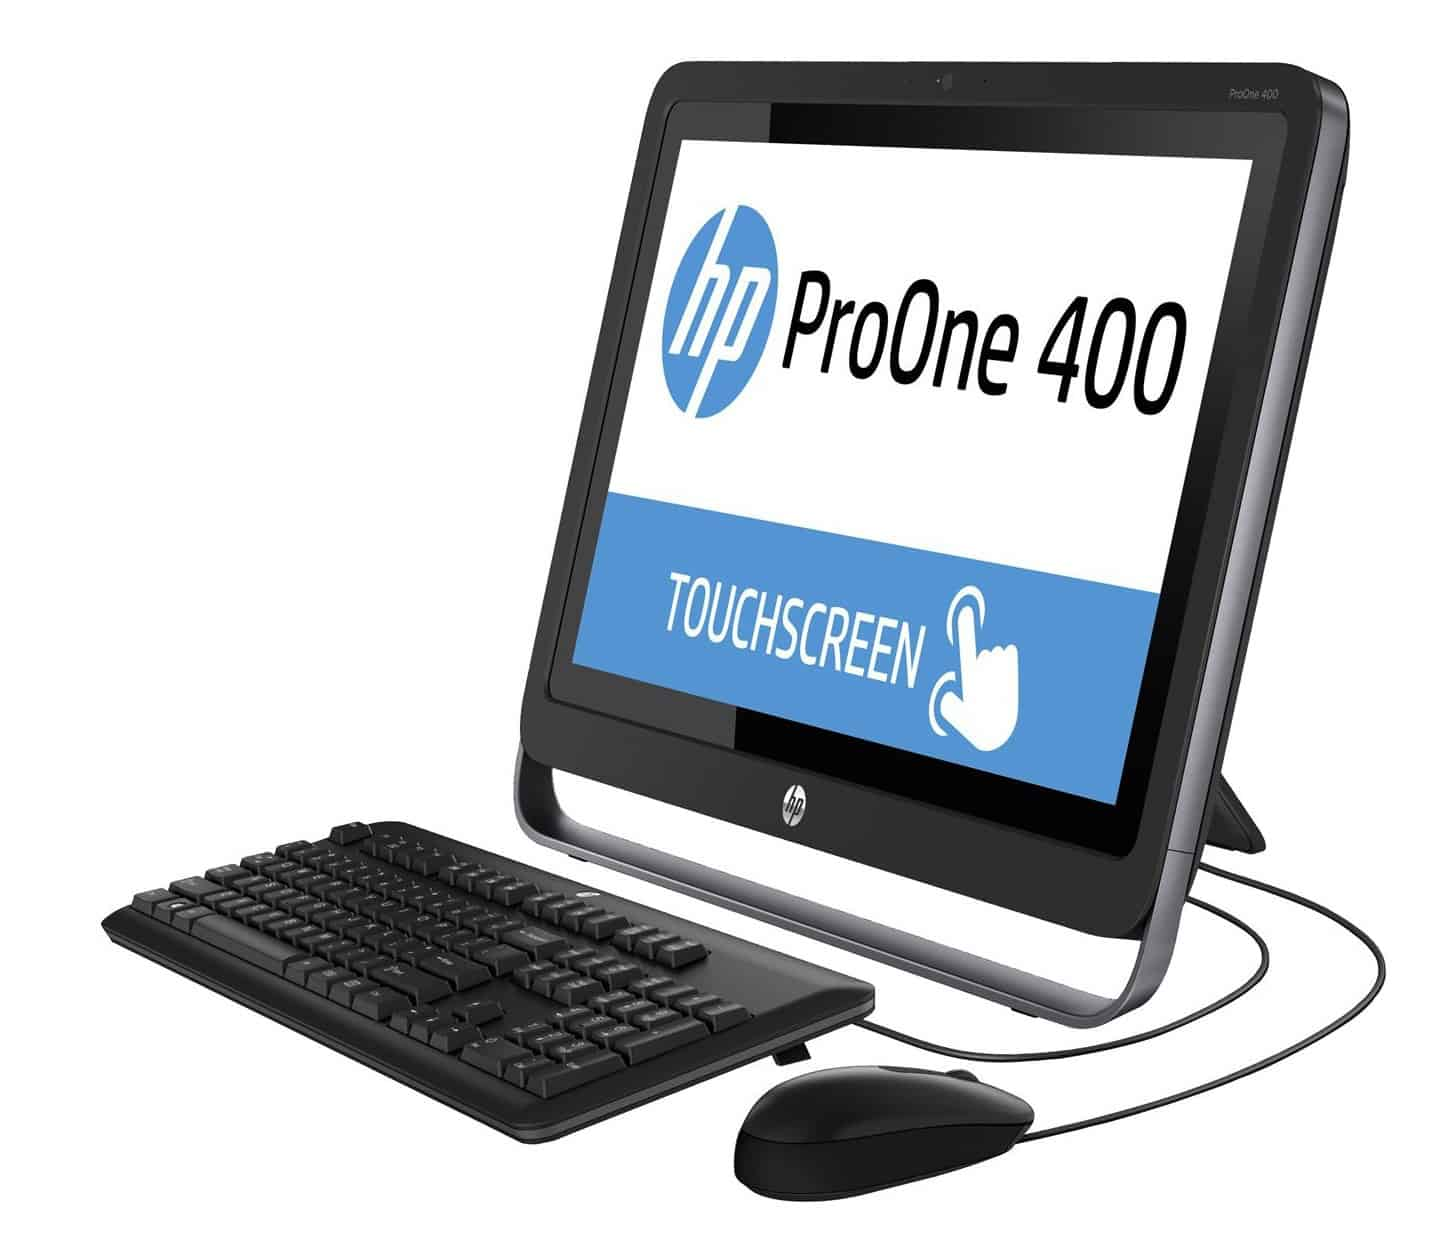 HP All-in-One ProOne 400